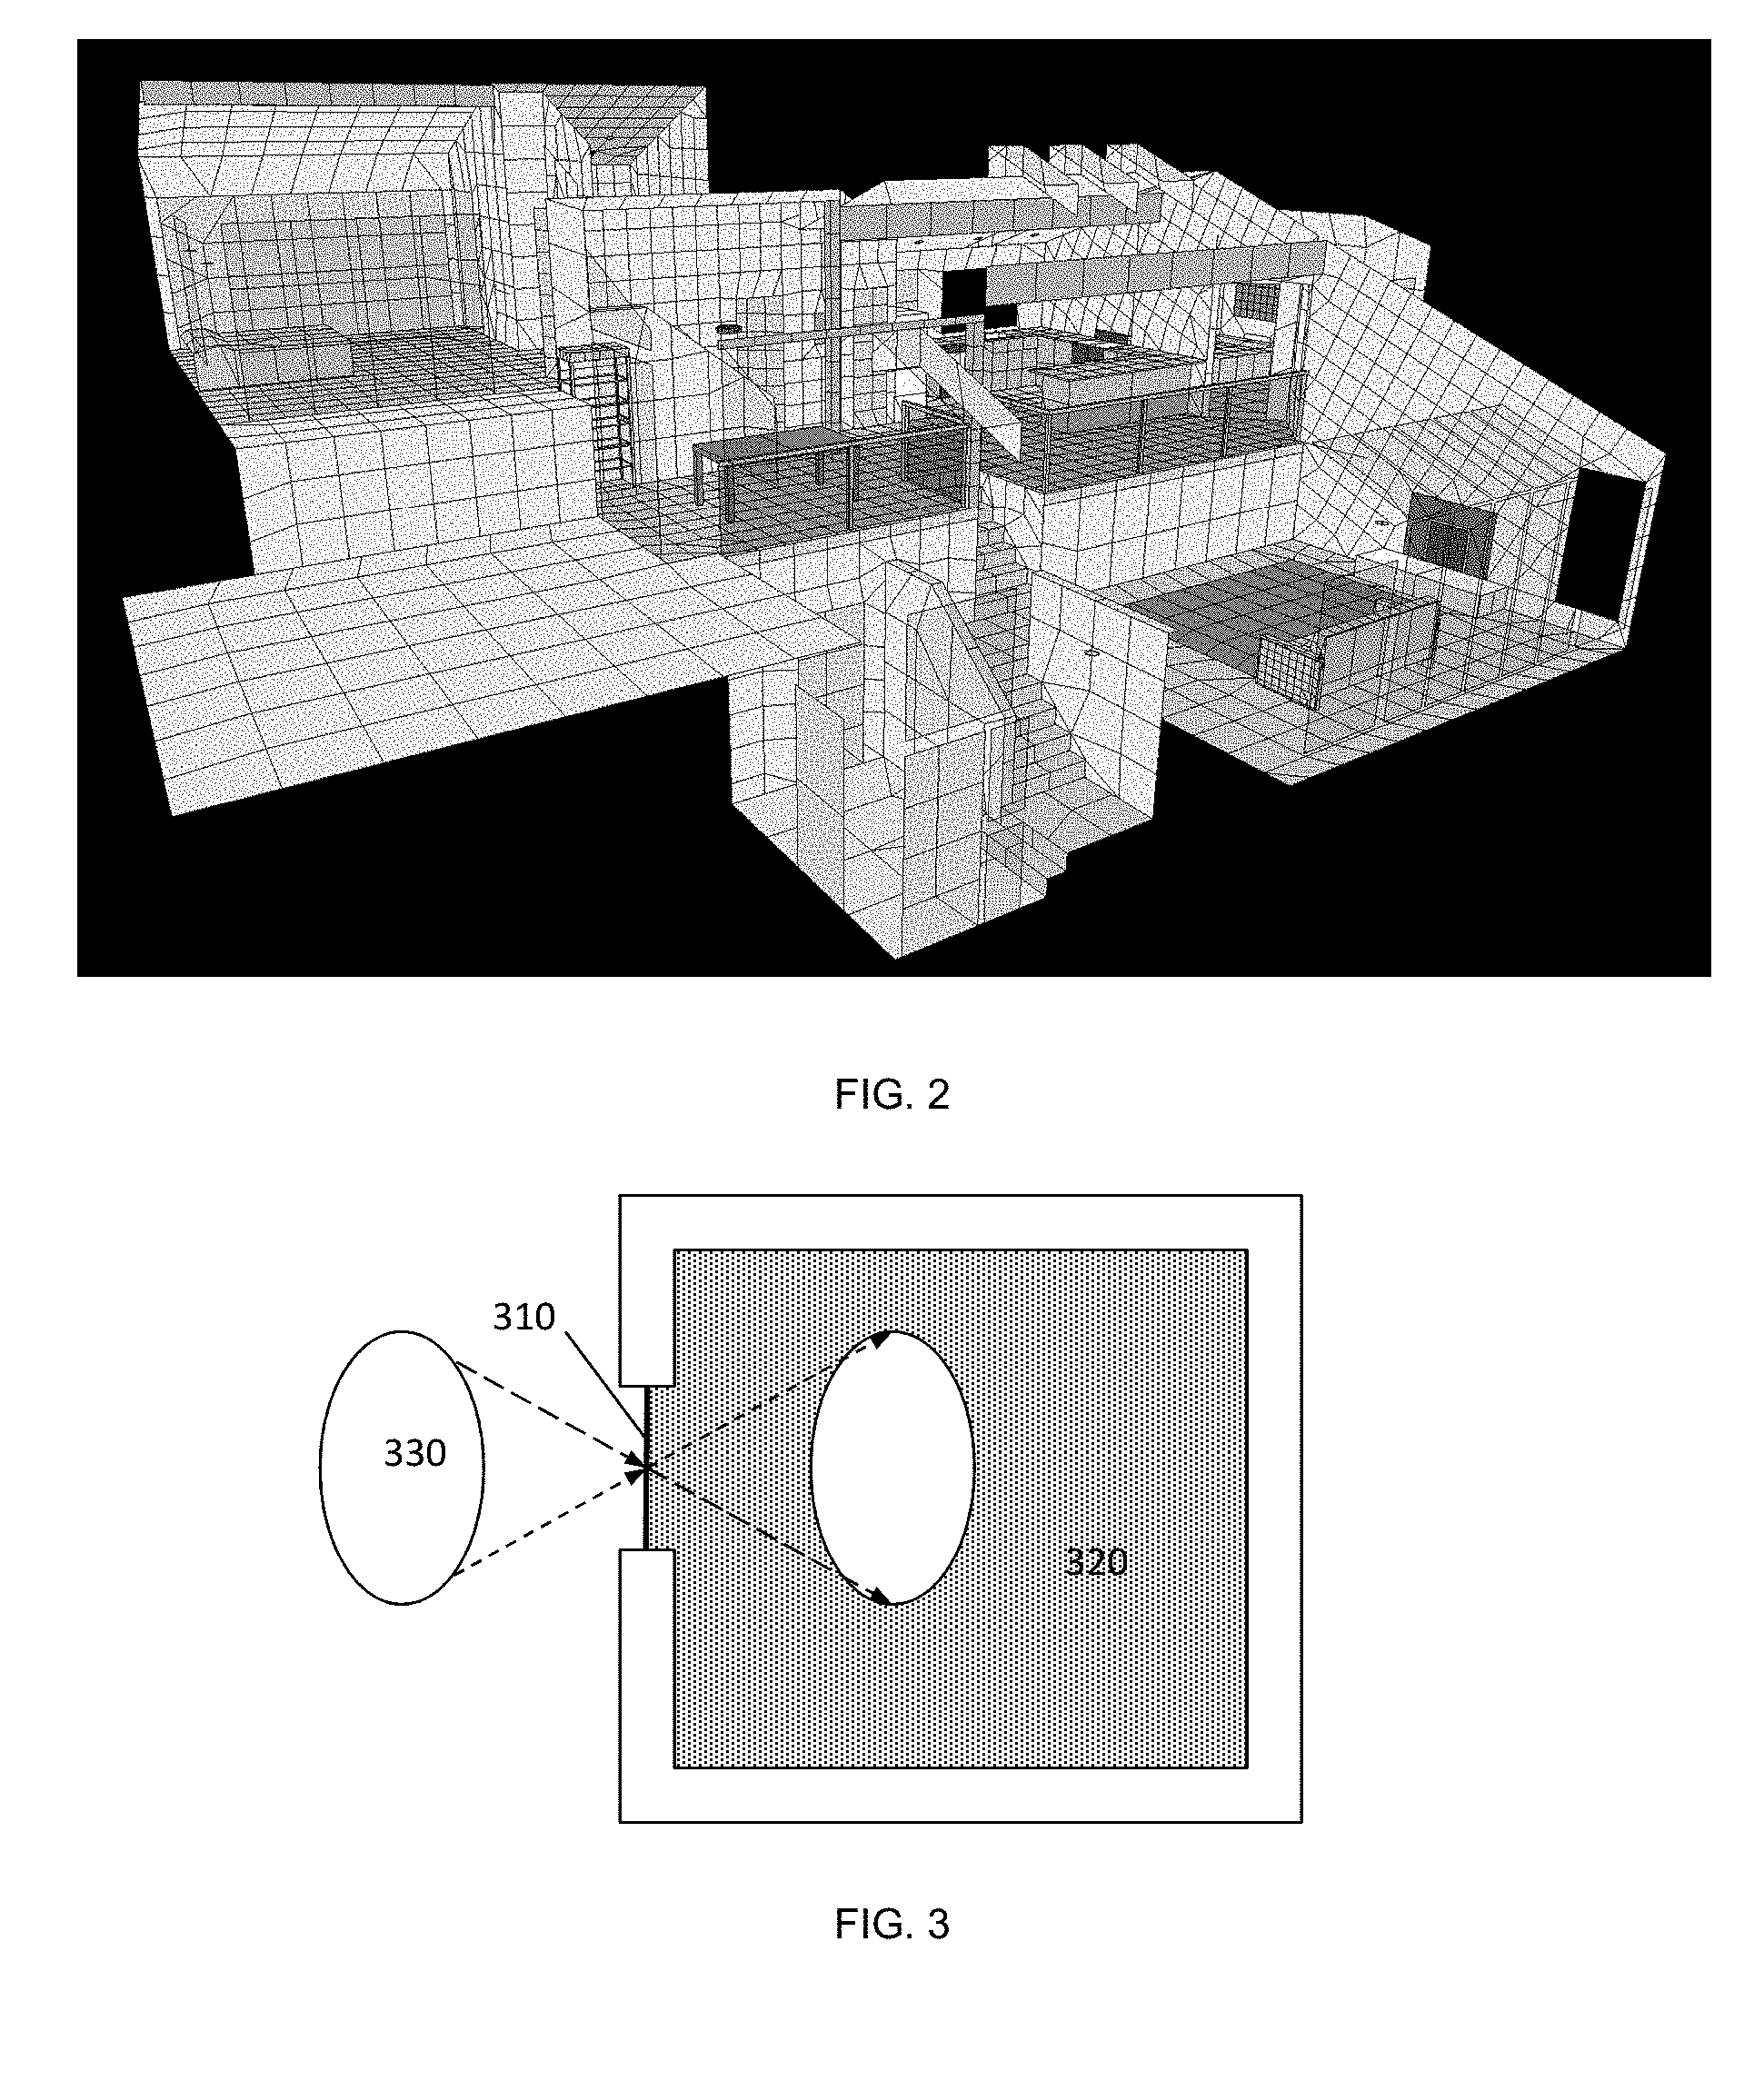 SYSTEM AND METHOD FOR REAL TIME DYNAMIC LIGHTING SIMULATION